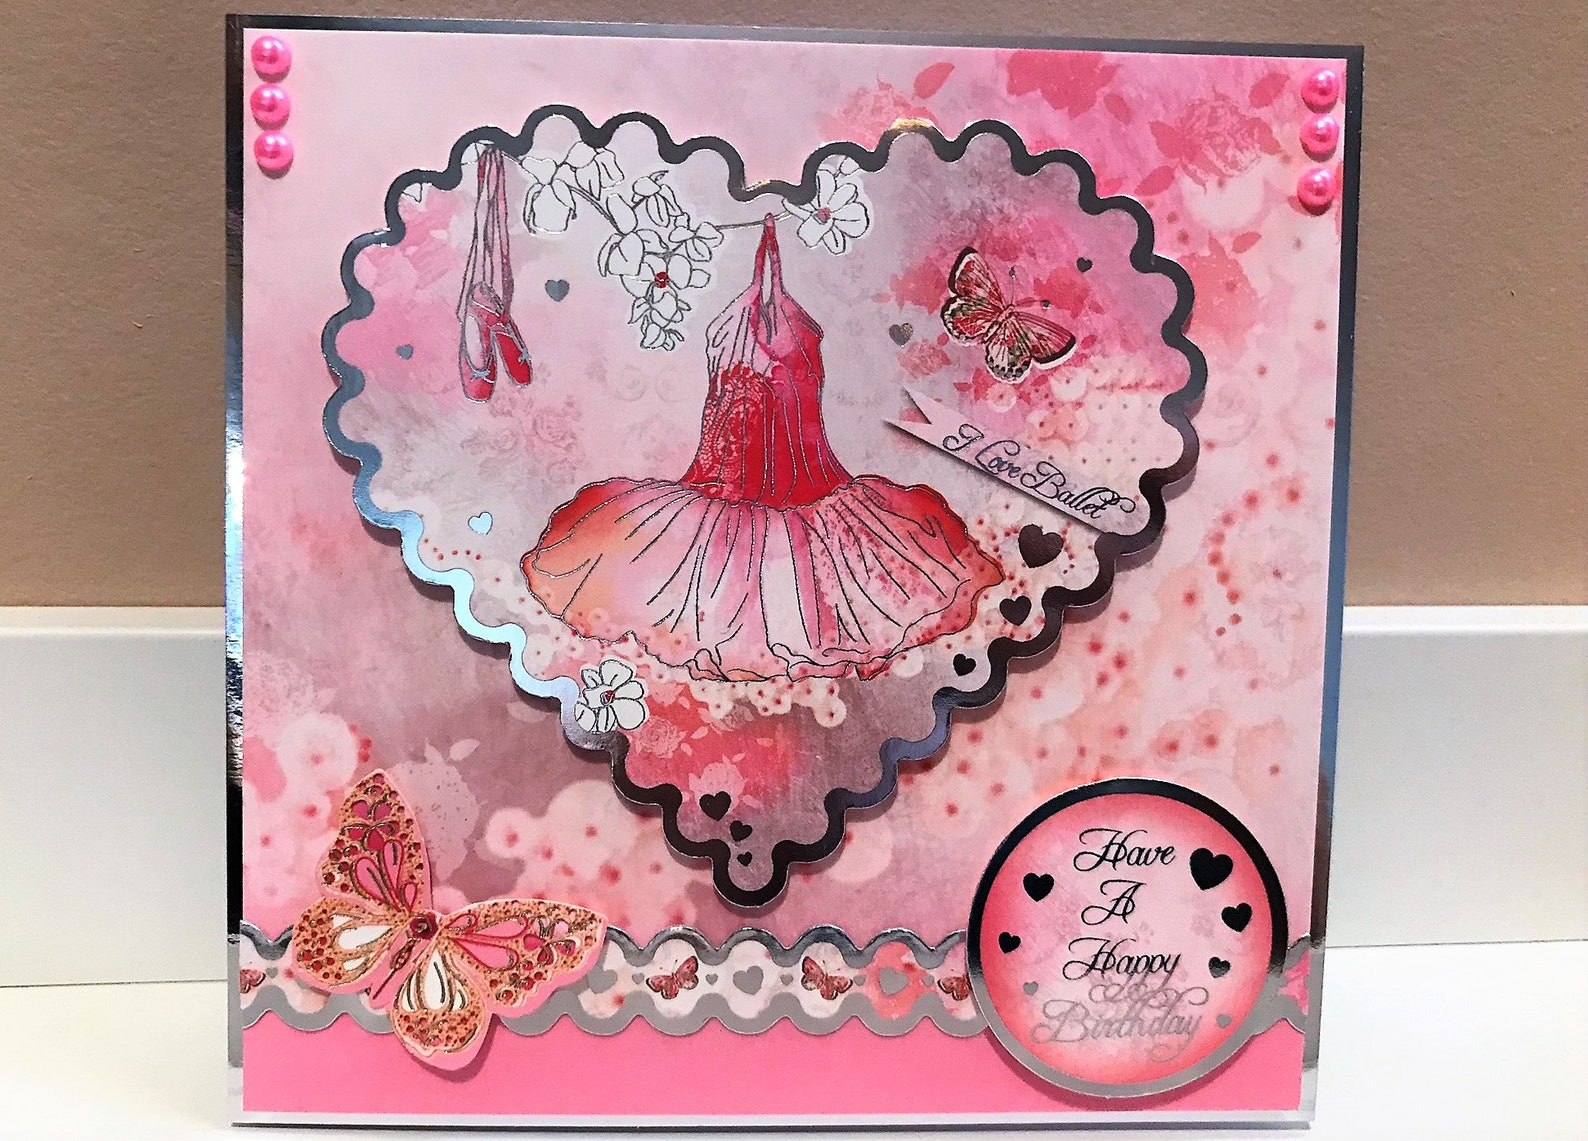 have a happy birthday - girl's birthday card, ballet card ballet shoes card pink card children's card, dance card,